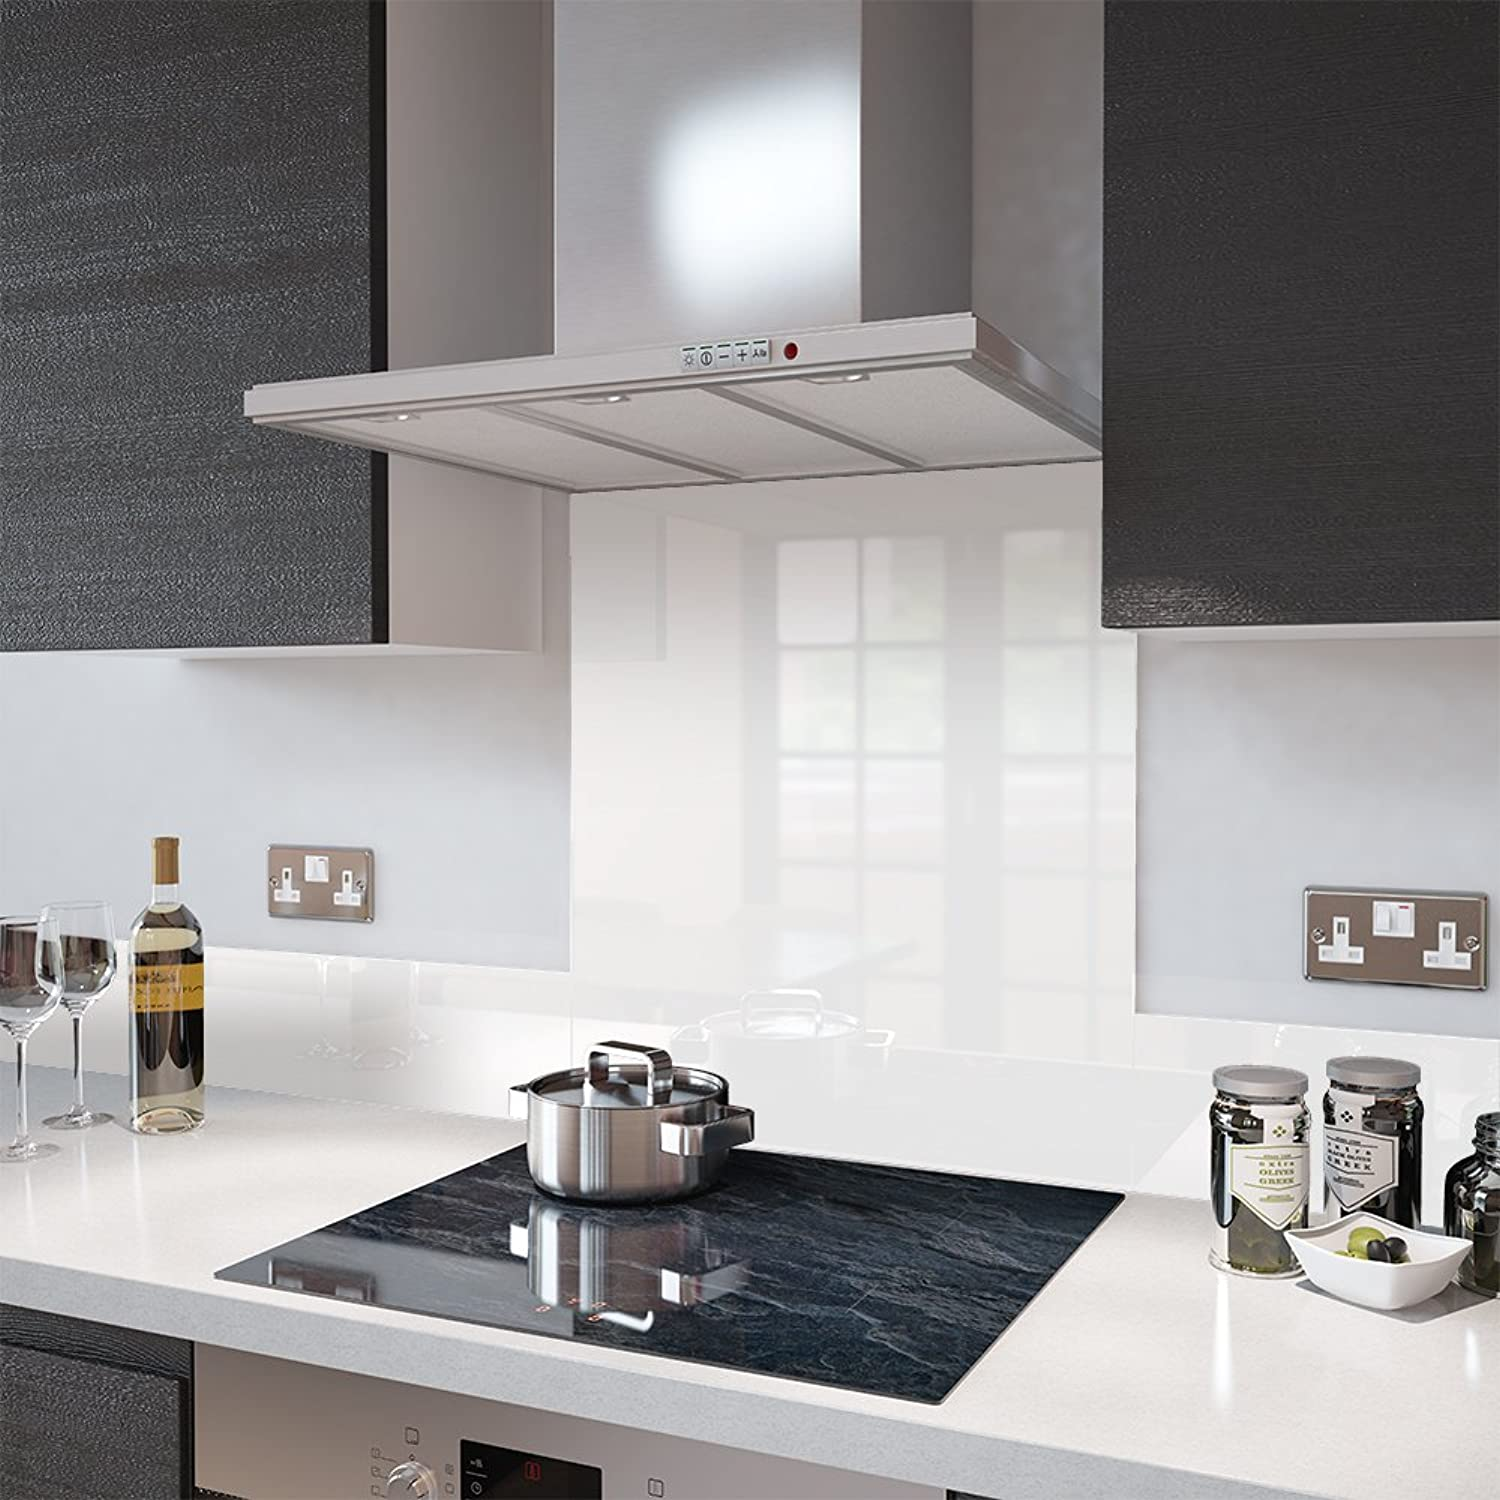 High Gloss White Toughened Glass Splashbacks and Upstands - by Premier Range in 80cm Wide x 60cm High with Fixing Holes